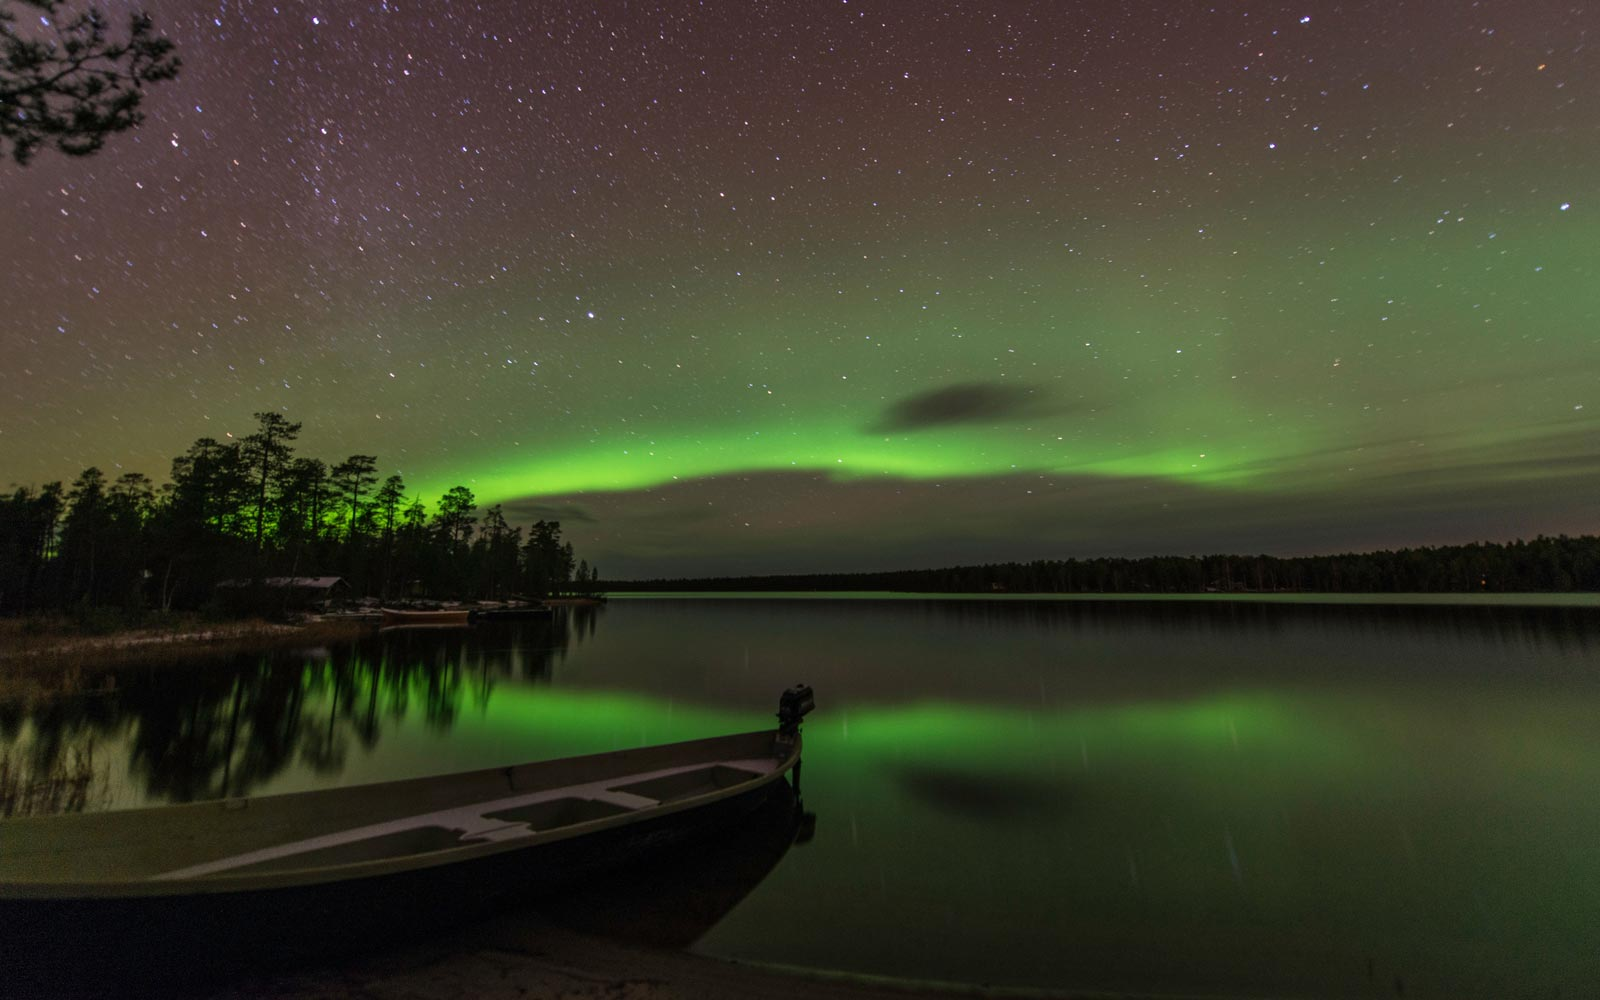 Northern light or Aurora Borealis Nellim near Inari Lake in Lapland, Finland